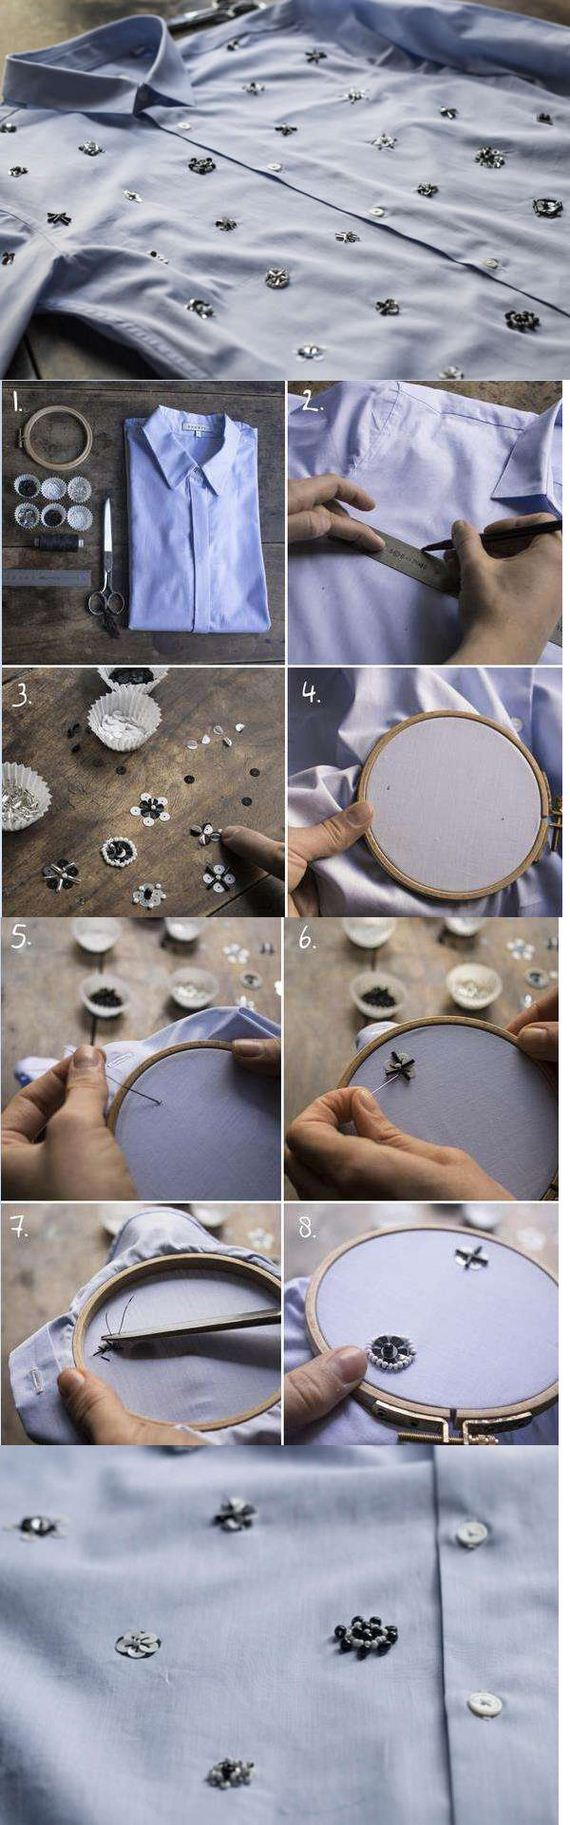 11-diy-clothes-ideas